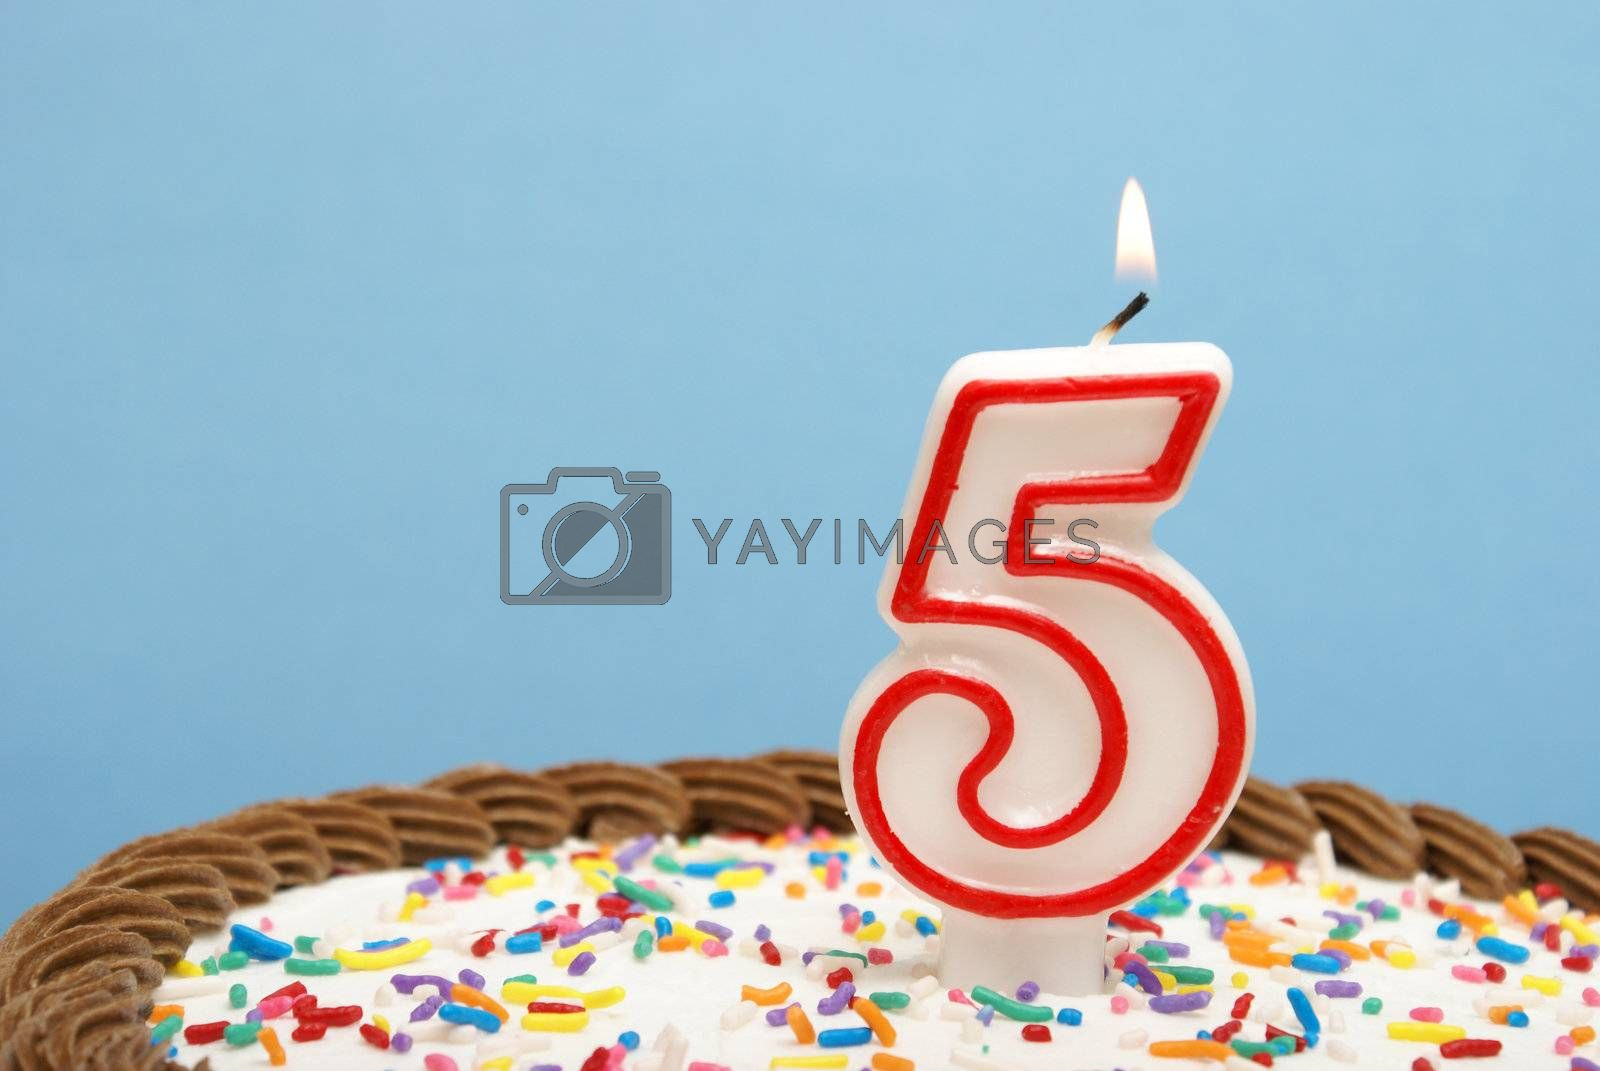 A celebration of the fifth year either for a birthday, business or other event.